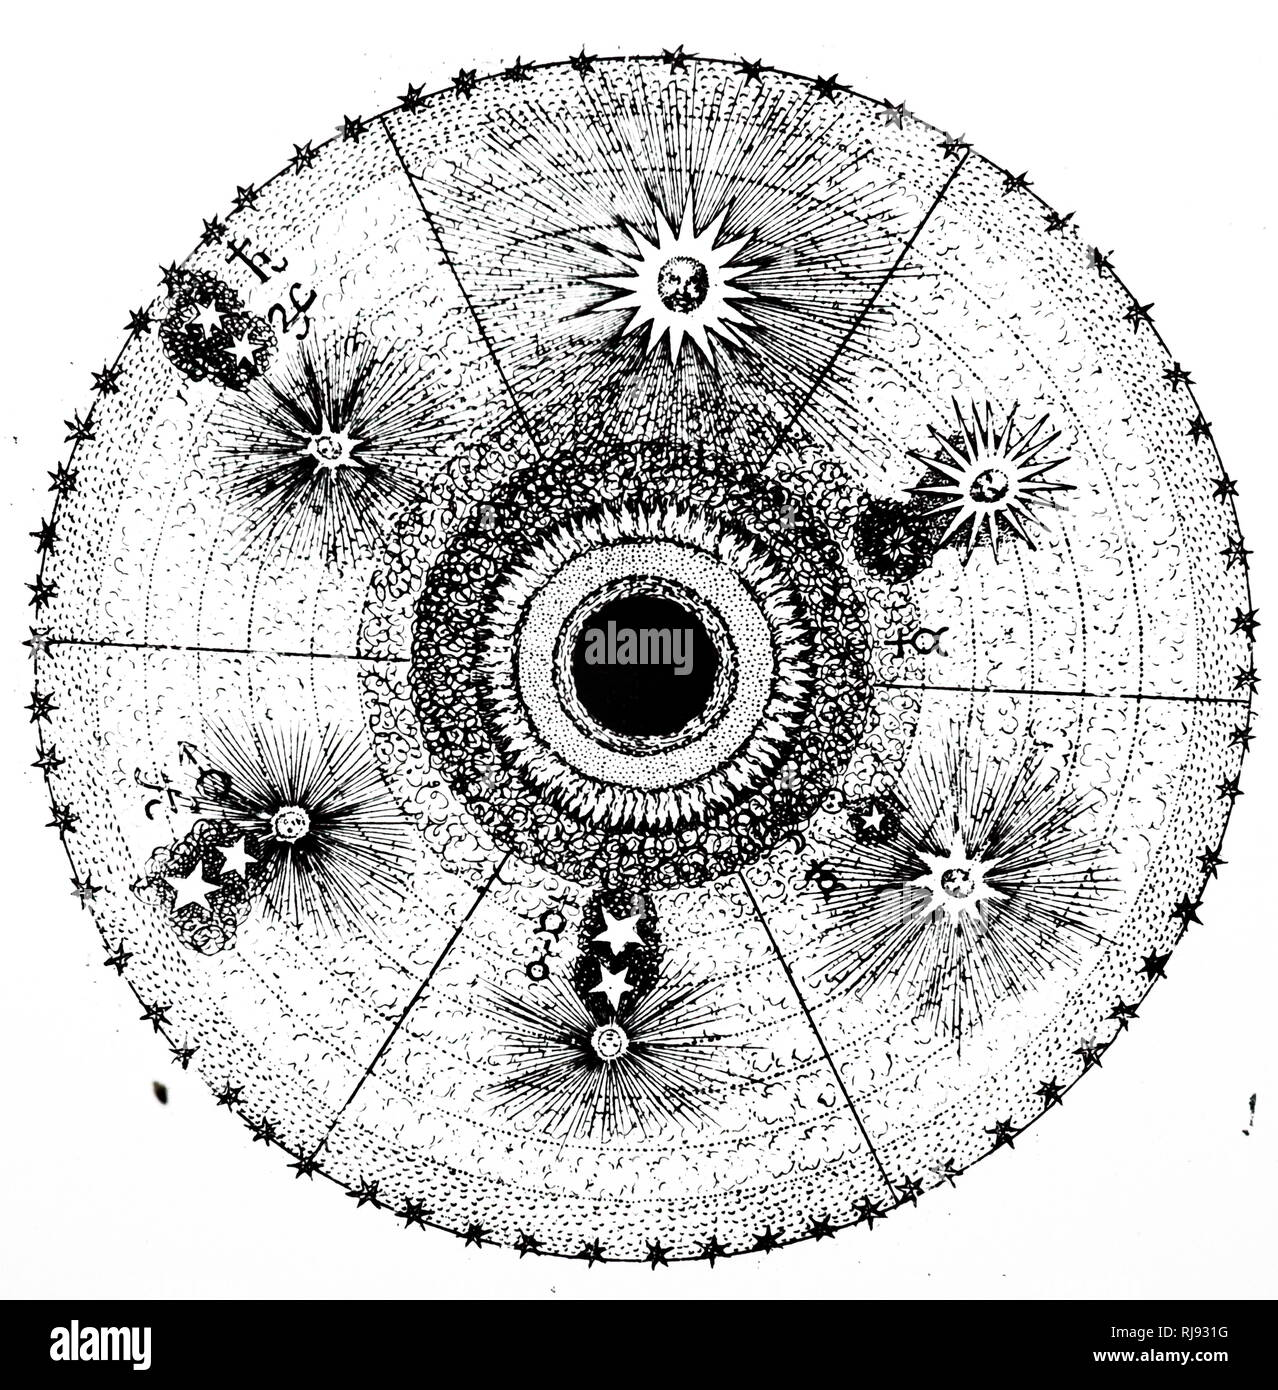 An illustration of the influence of four qualities (hot, dry, wet, cold) and their planetary associations, and the central Earth with the four elements (earth, wind, fire, water). For horoscopes such an association was significant. Dated 17th century - Stock Image